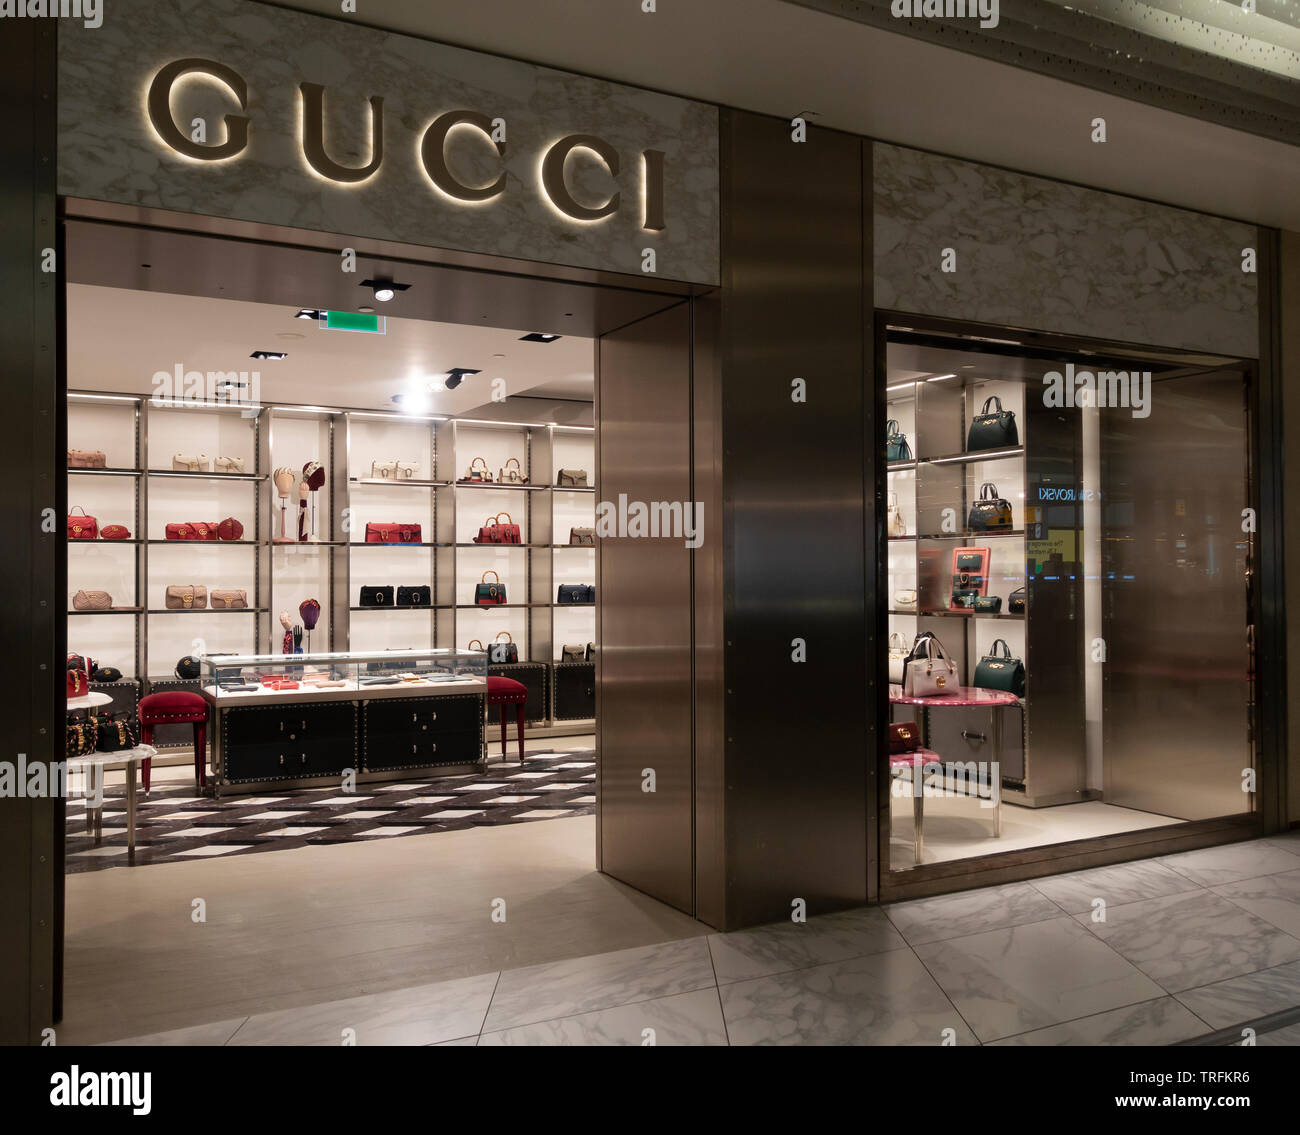 Gucci luxury handbag and accessory shop / retail unit at Schiphol Airport, Amsterdam - Stock Image